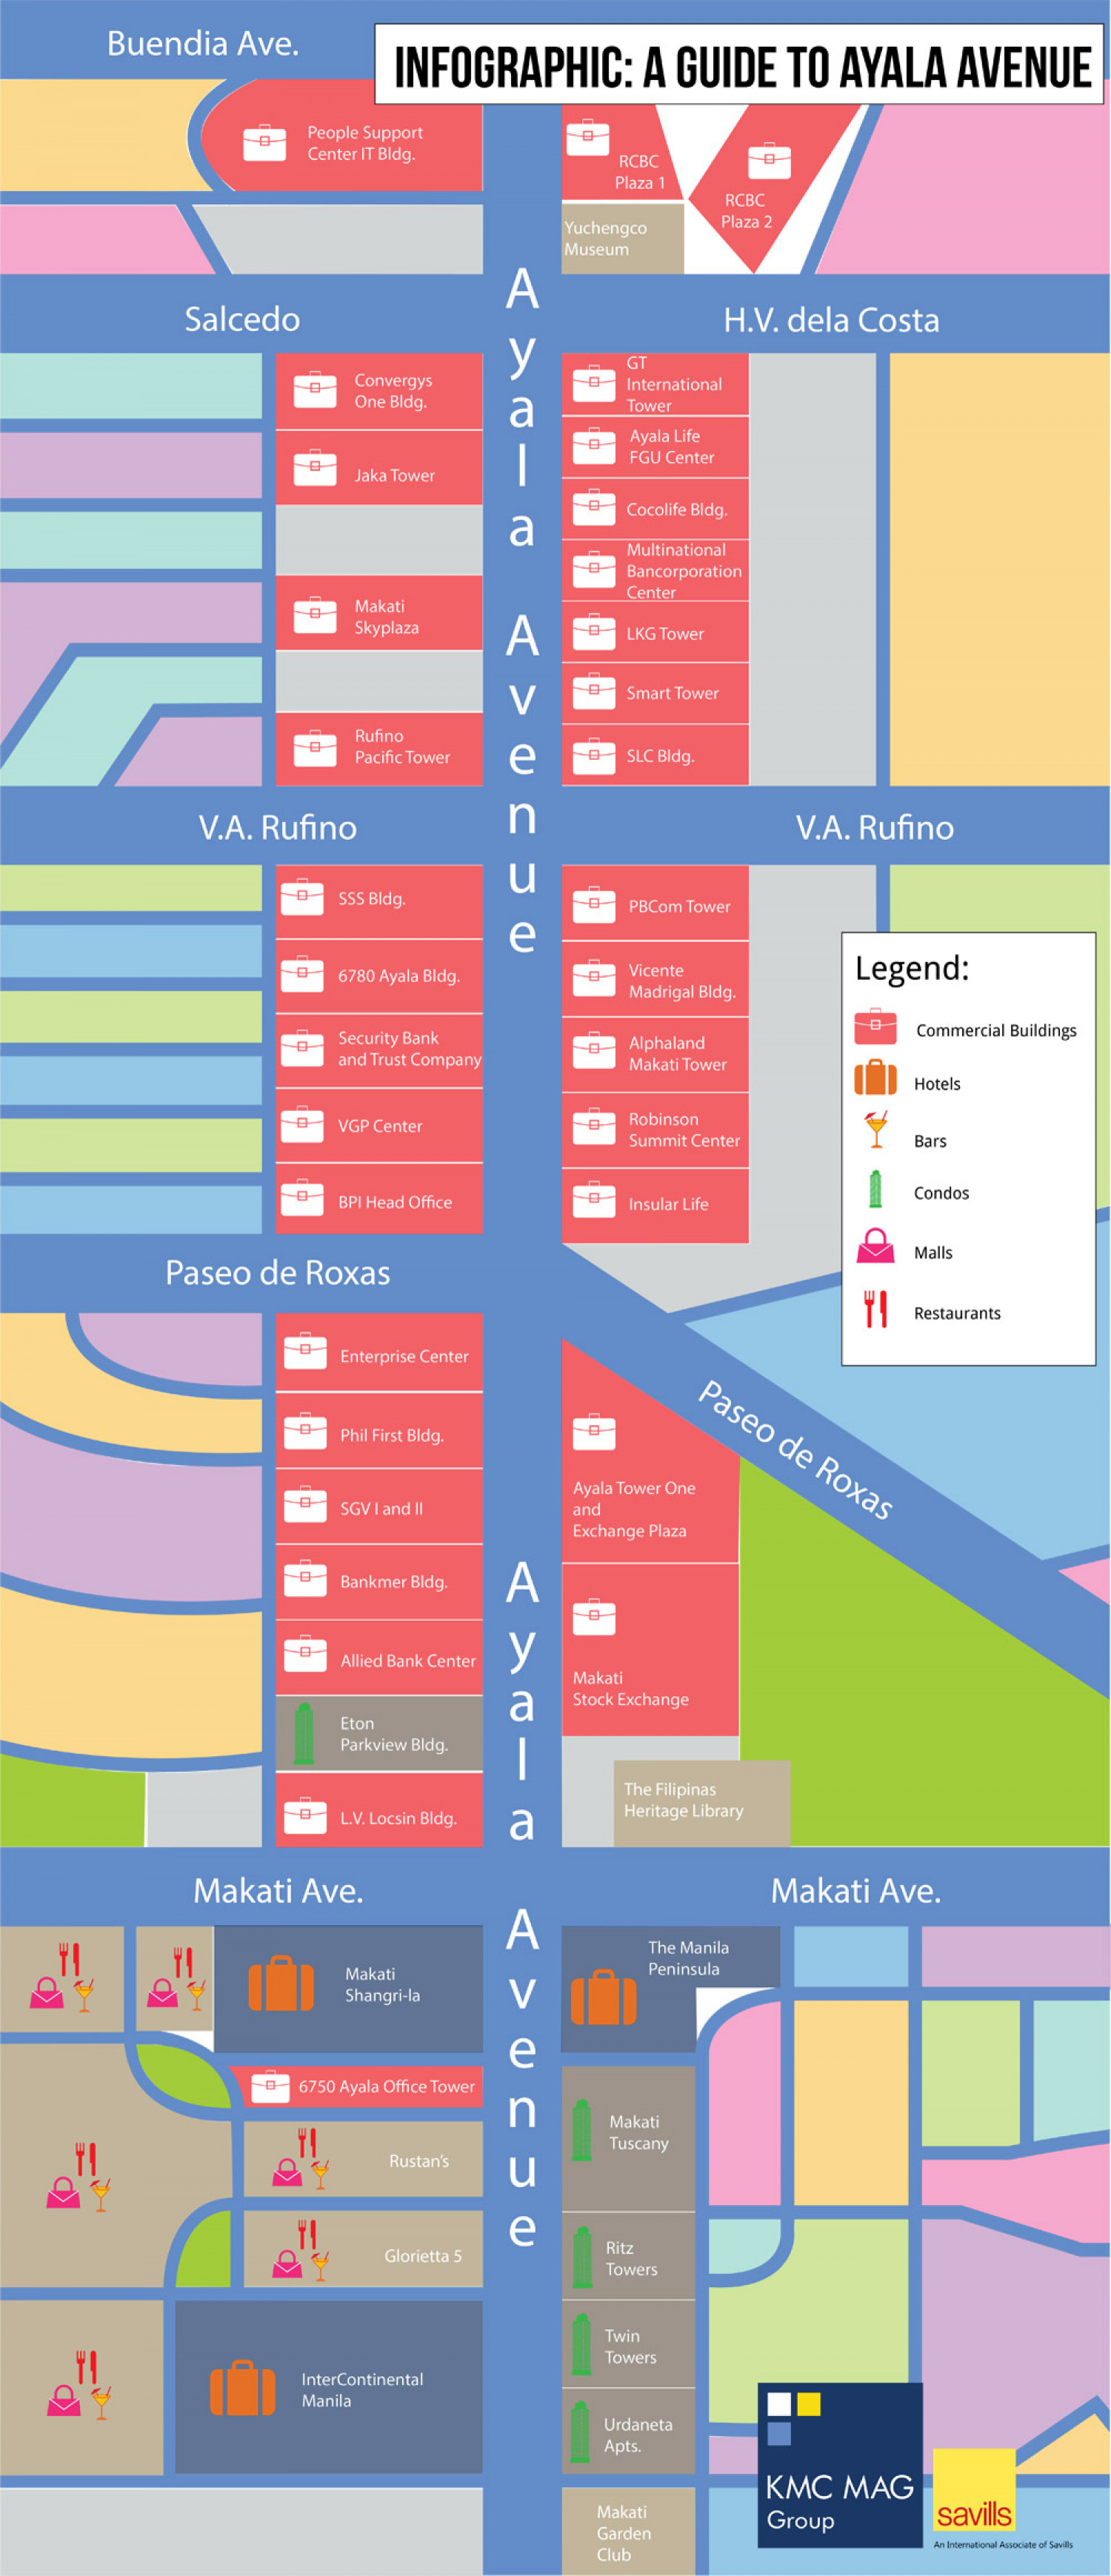 Ayala Avenue Map: Where to Eat, Sleep, Shop, and Work Infographic